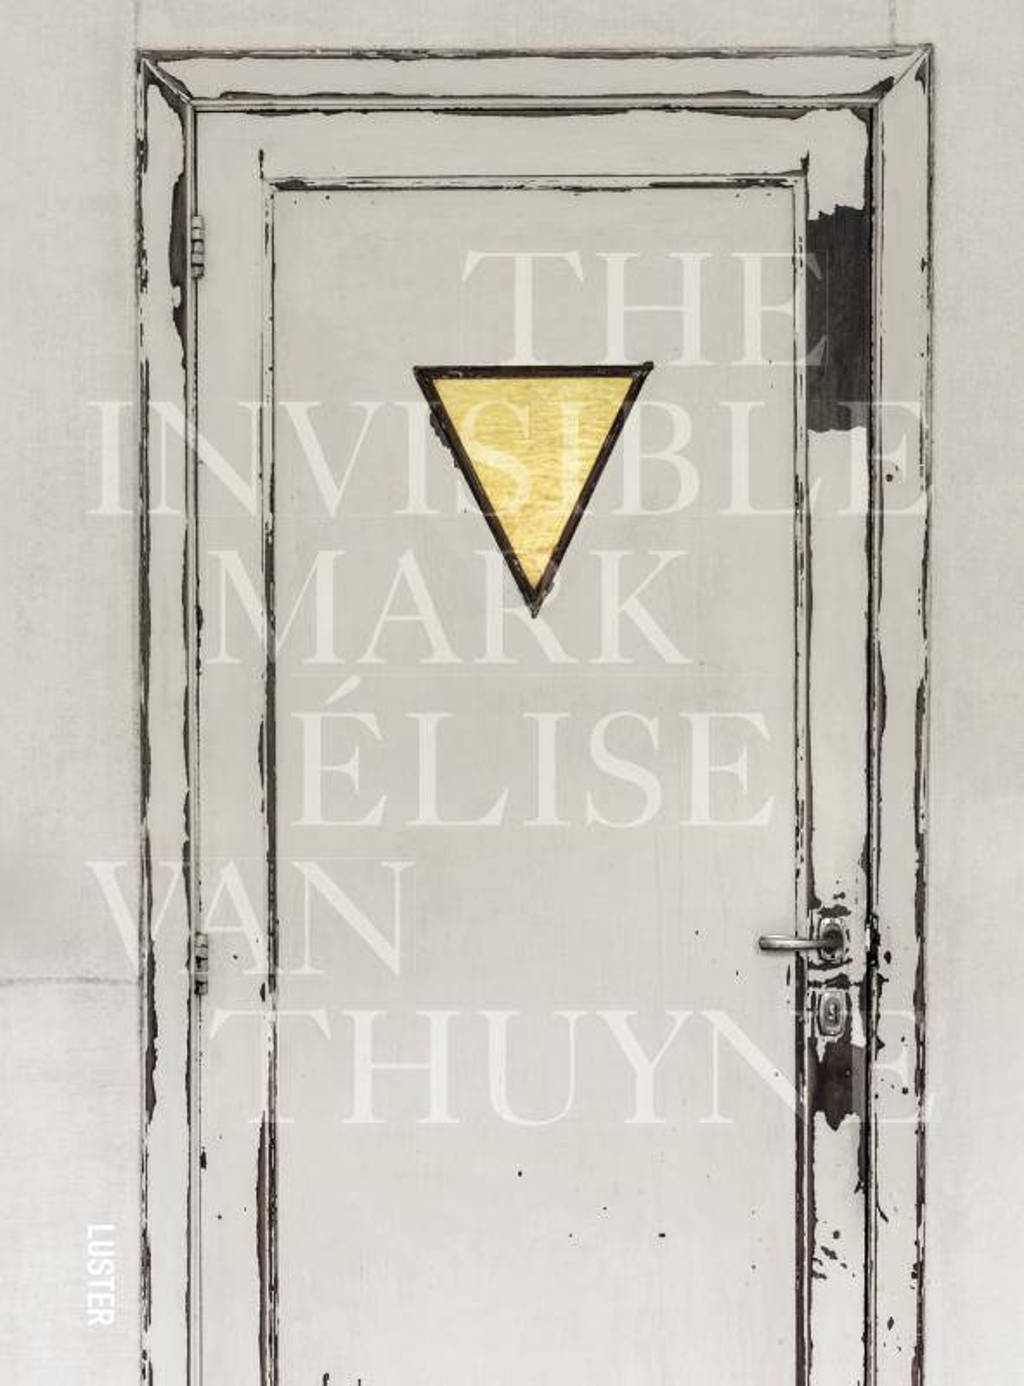 The Invisible Mark - Elise Van Thuyne